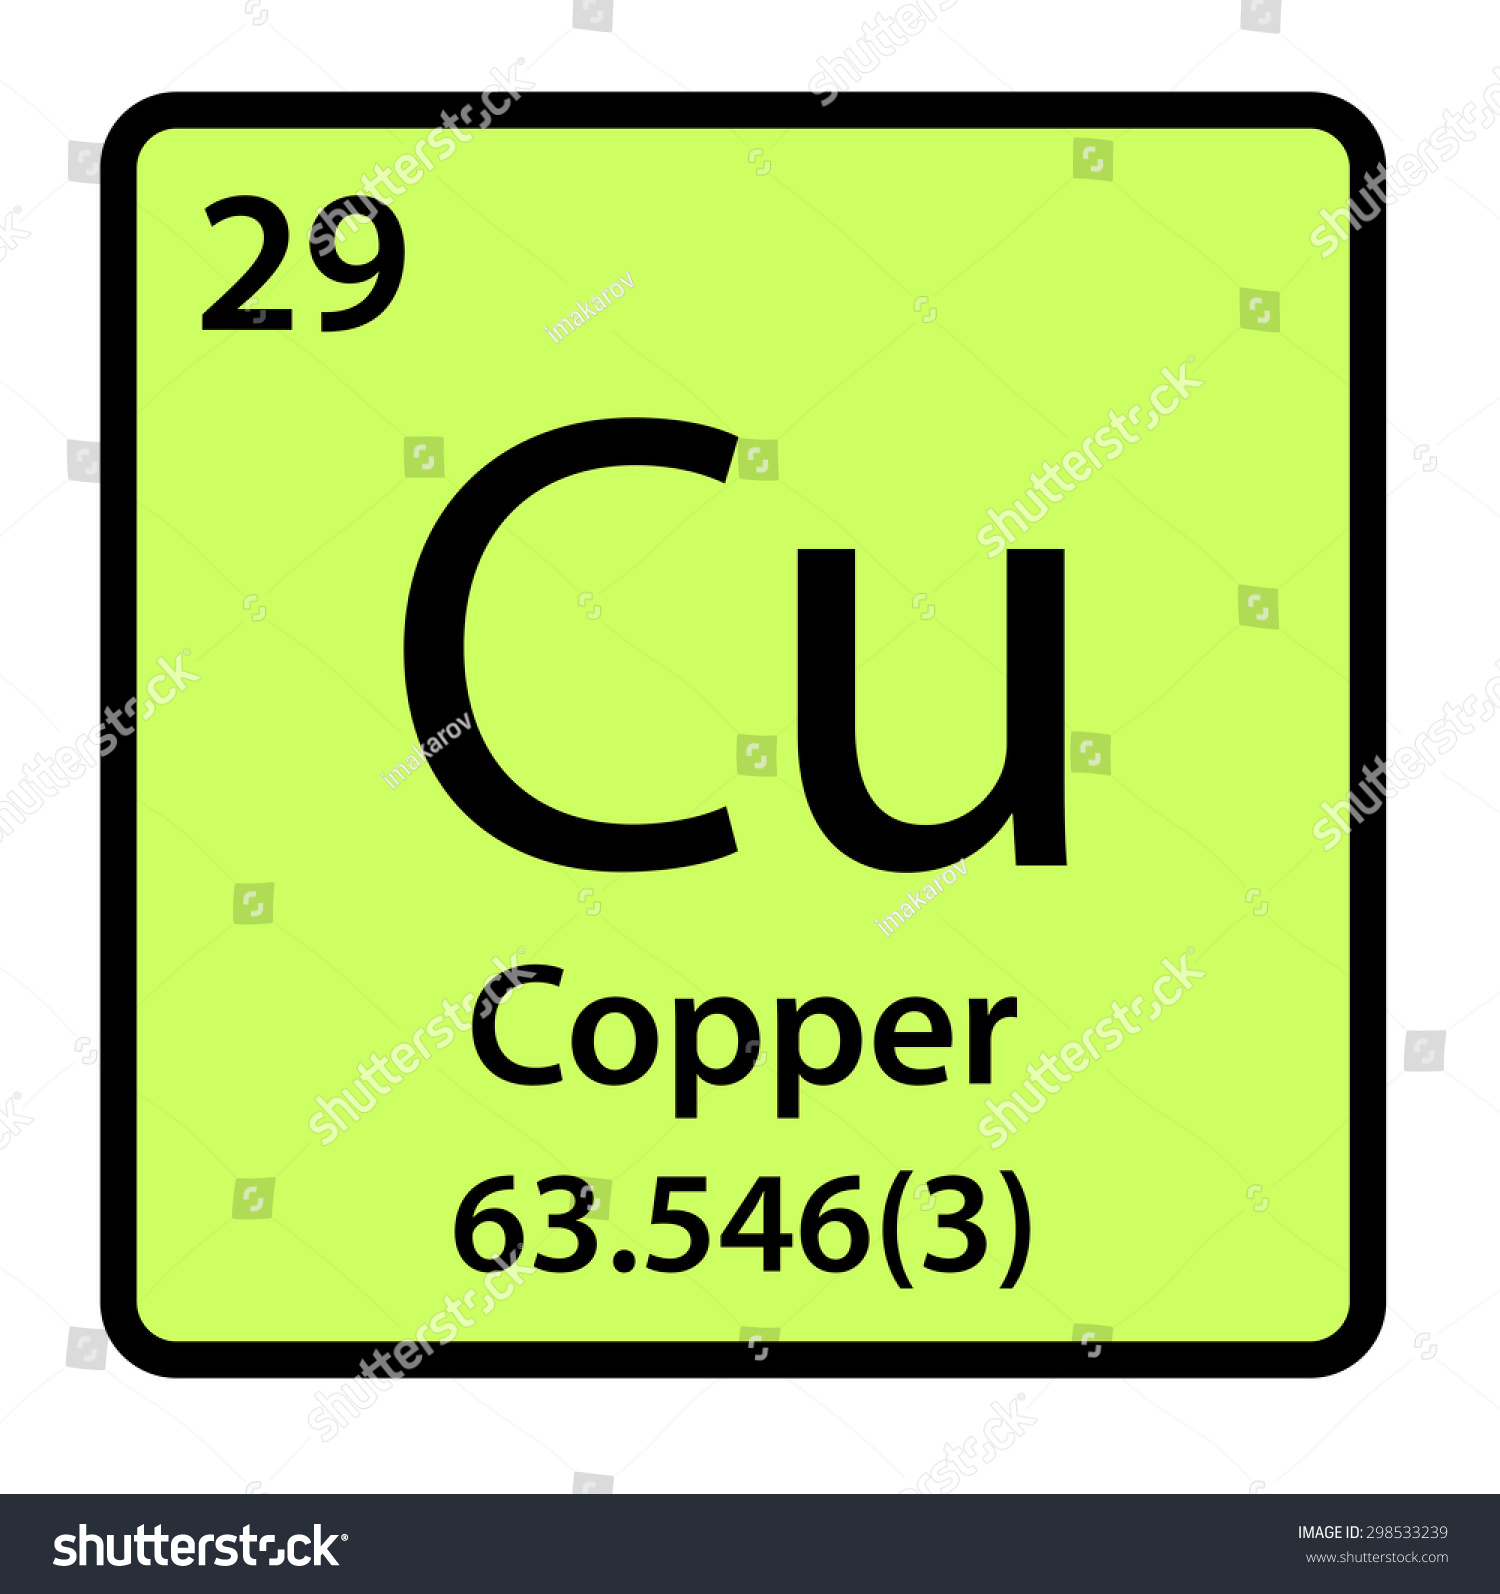 Element copper periodic table stock illustration 298533239 element copper of the periodic table gamestrikefo Images